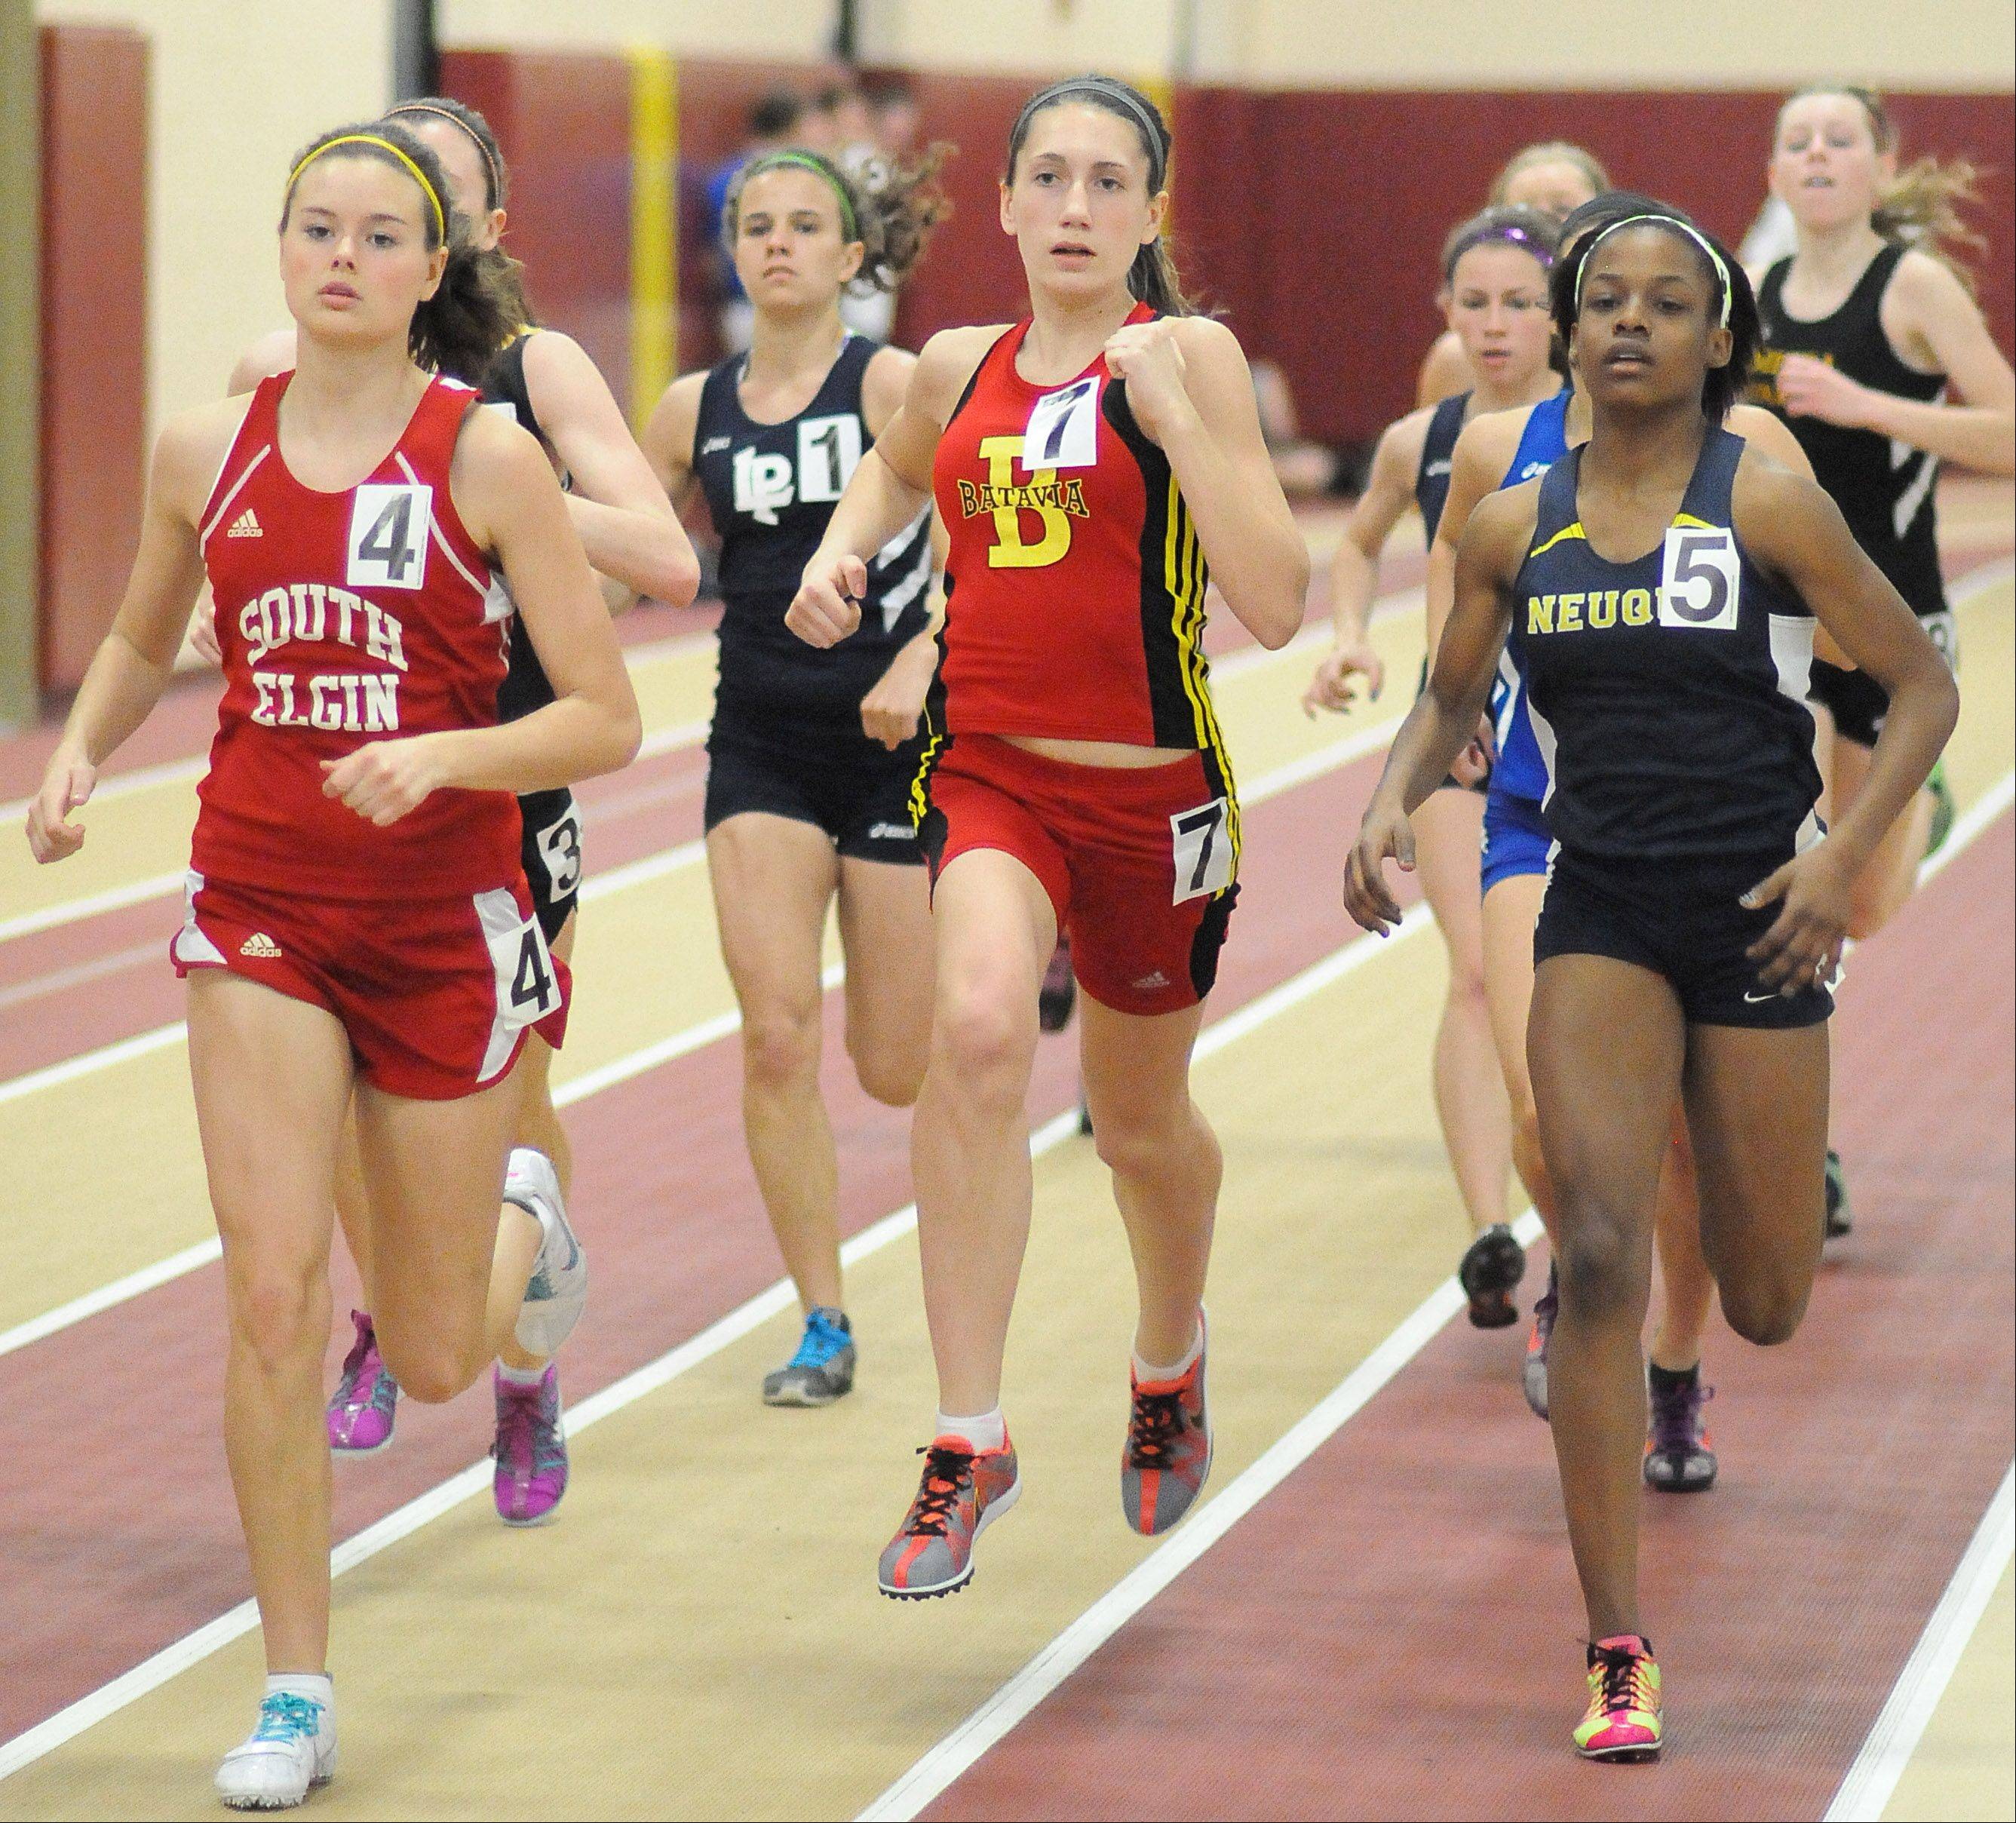 South Elgin's Jordan Tuin, Batavia's Alicia Grant and Neuqua Valley's Maya Neal in the third heat of the 800 meter run at the Upstate Eight Conference in Batavia on Saturday, March 17.